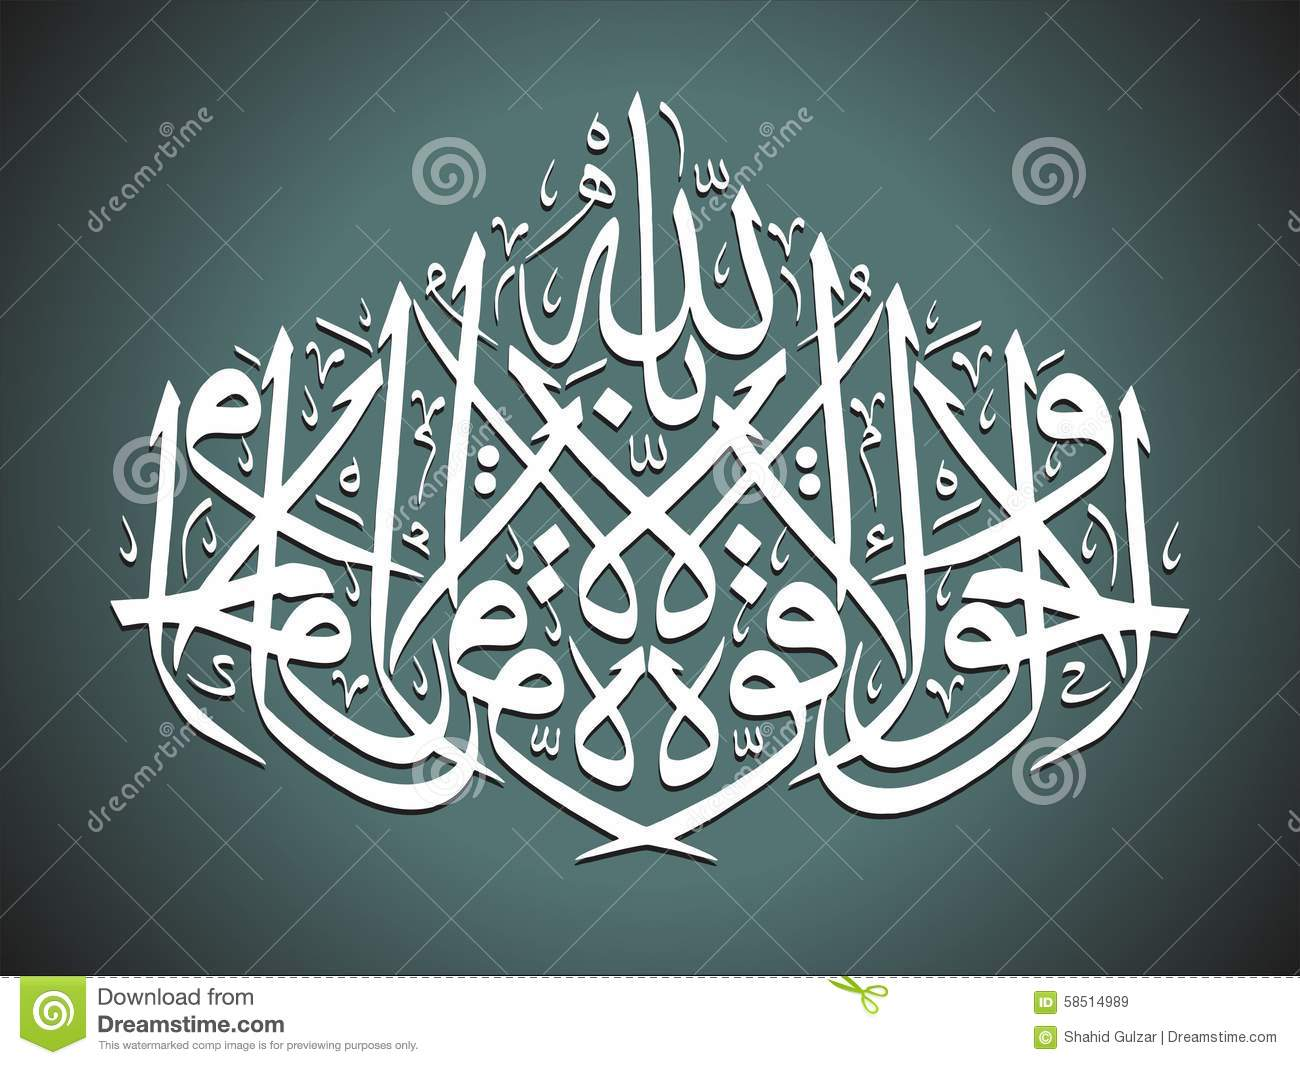 Vactor islamic calligraphy wallpaper written in khate maqoos stock